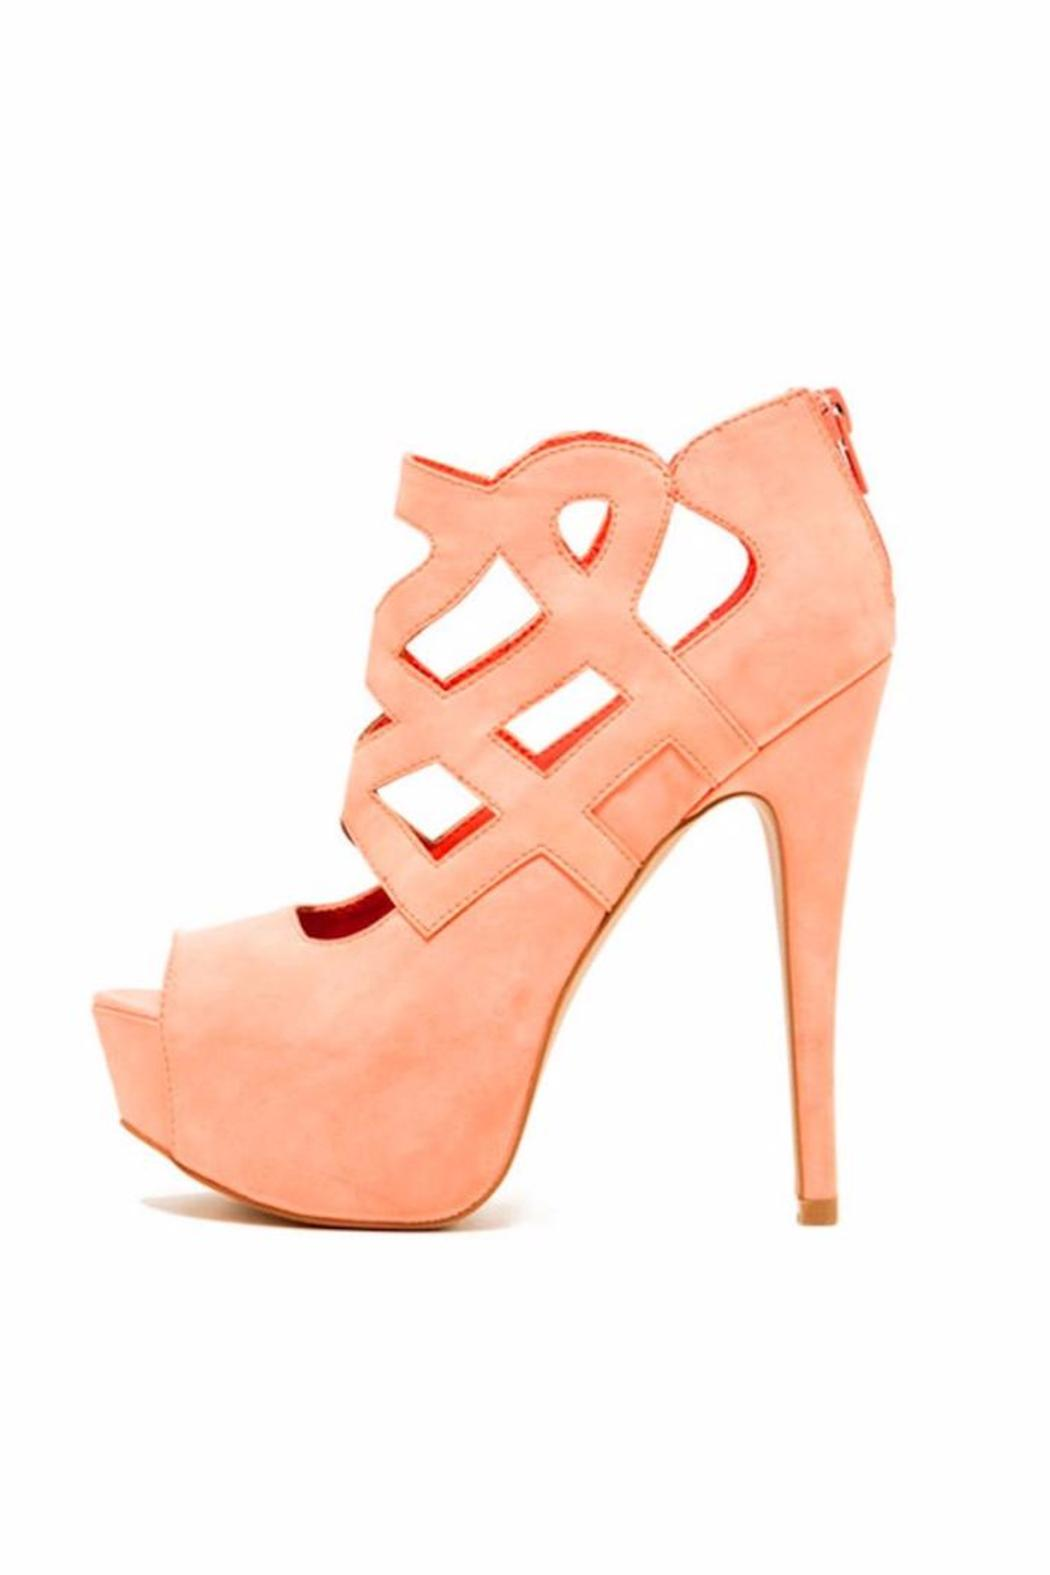 Qupid Caged Peep-Toe Stiletto - Front Cropped Image